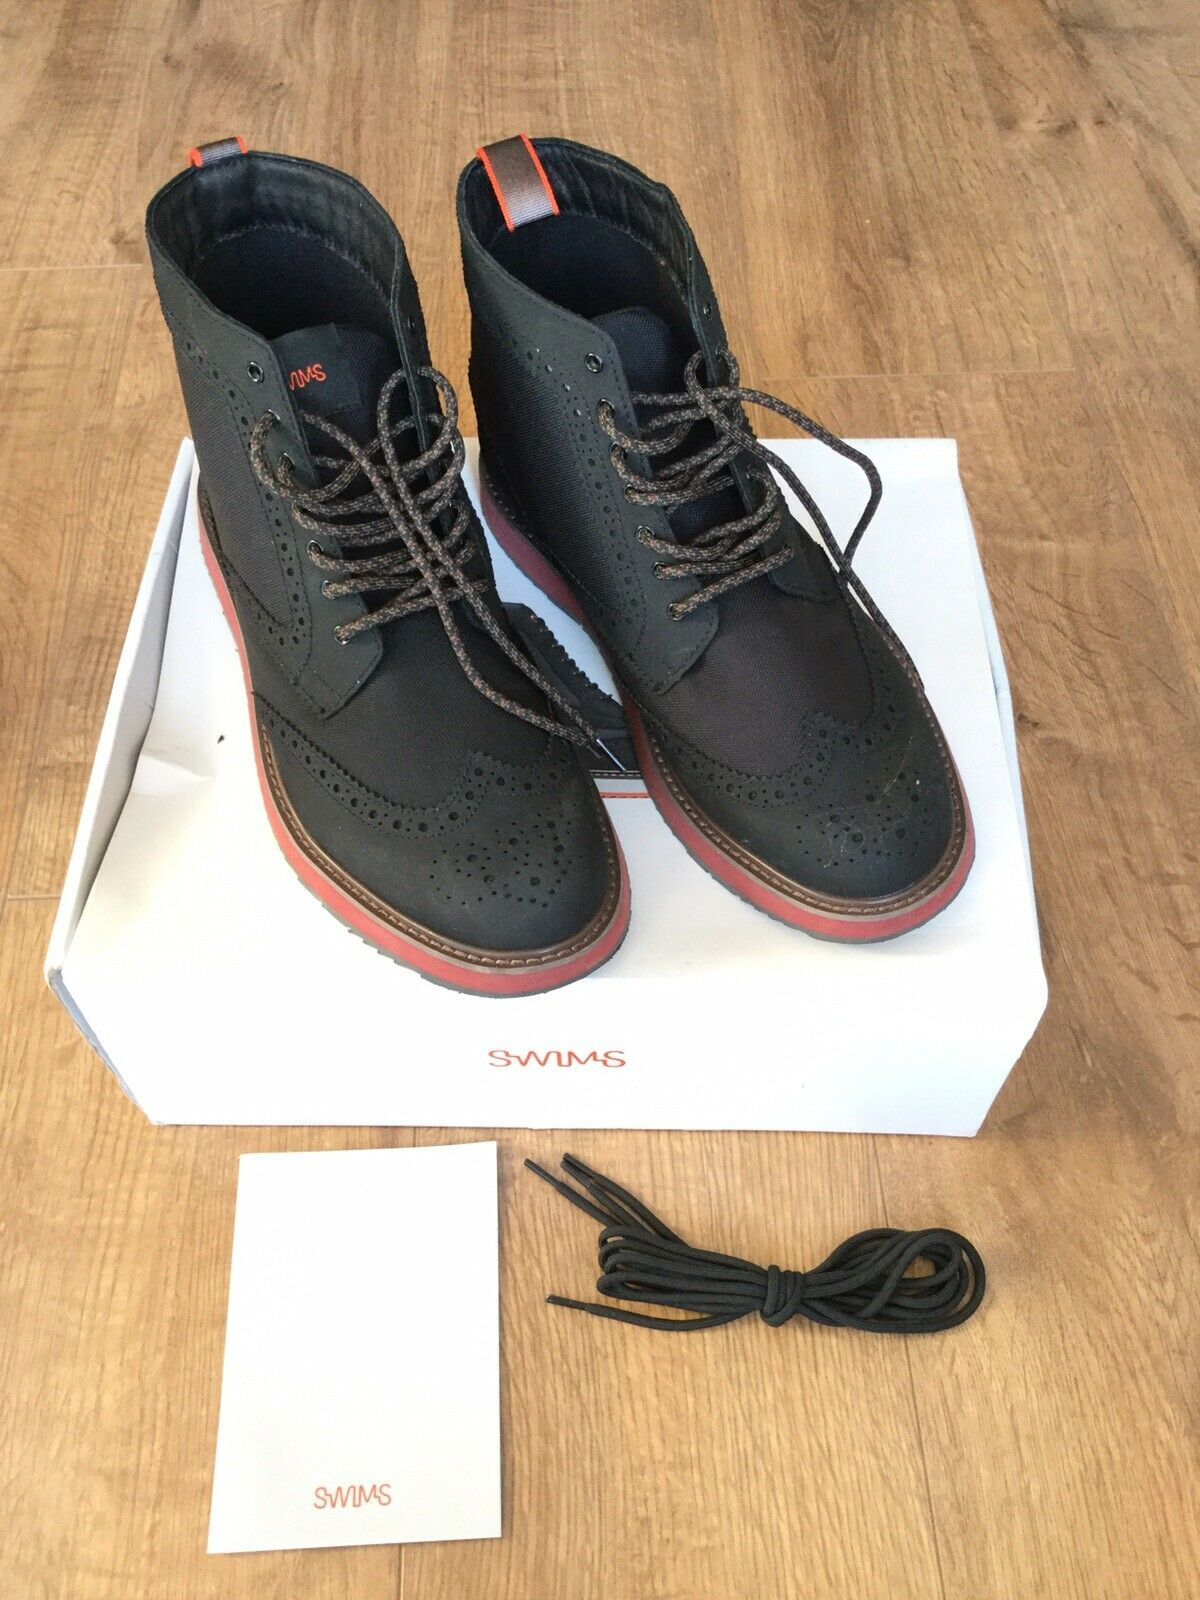 Swims Men's Stiefel - Größe UK 6 -   Worn Once Indoors